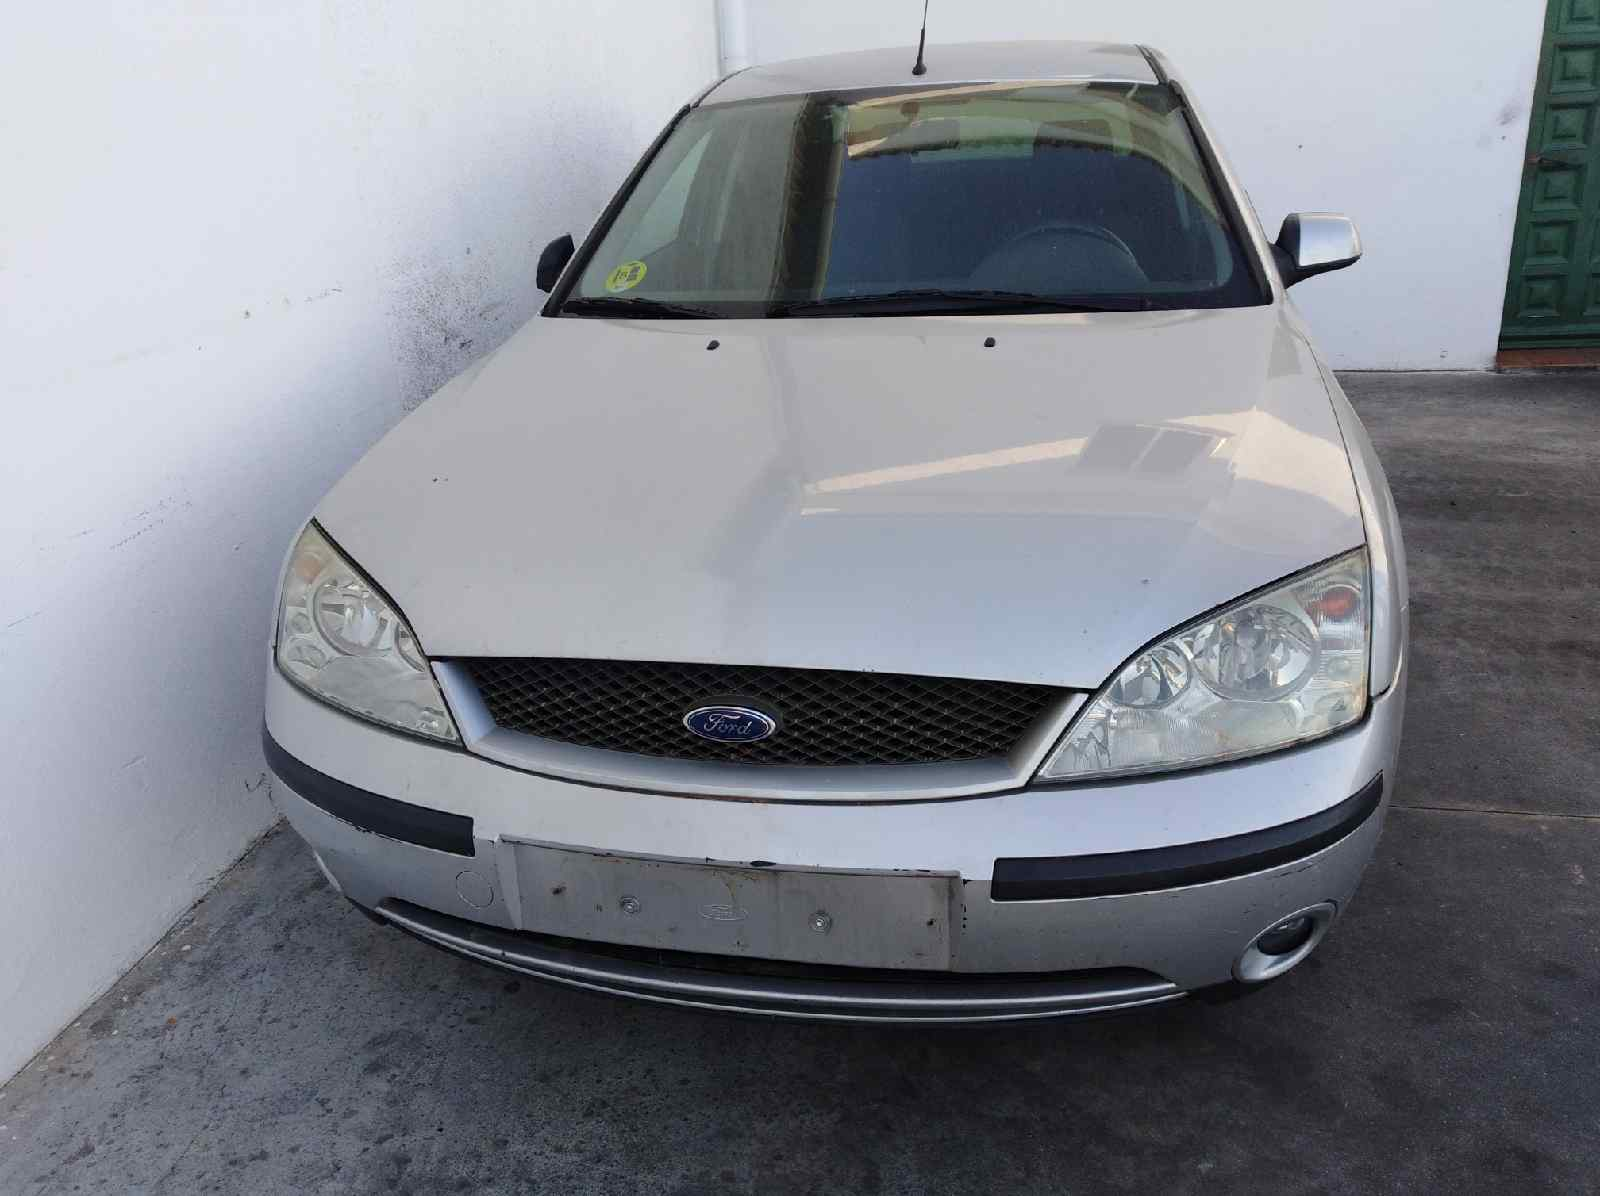 hight resolution of ford mondeo iii b5y 1 8 16v 4 doors 125hp 2000